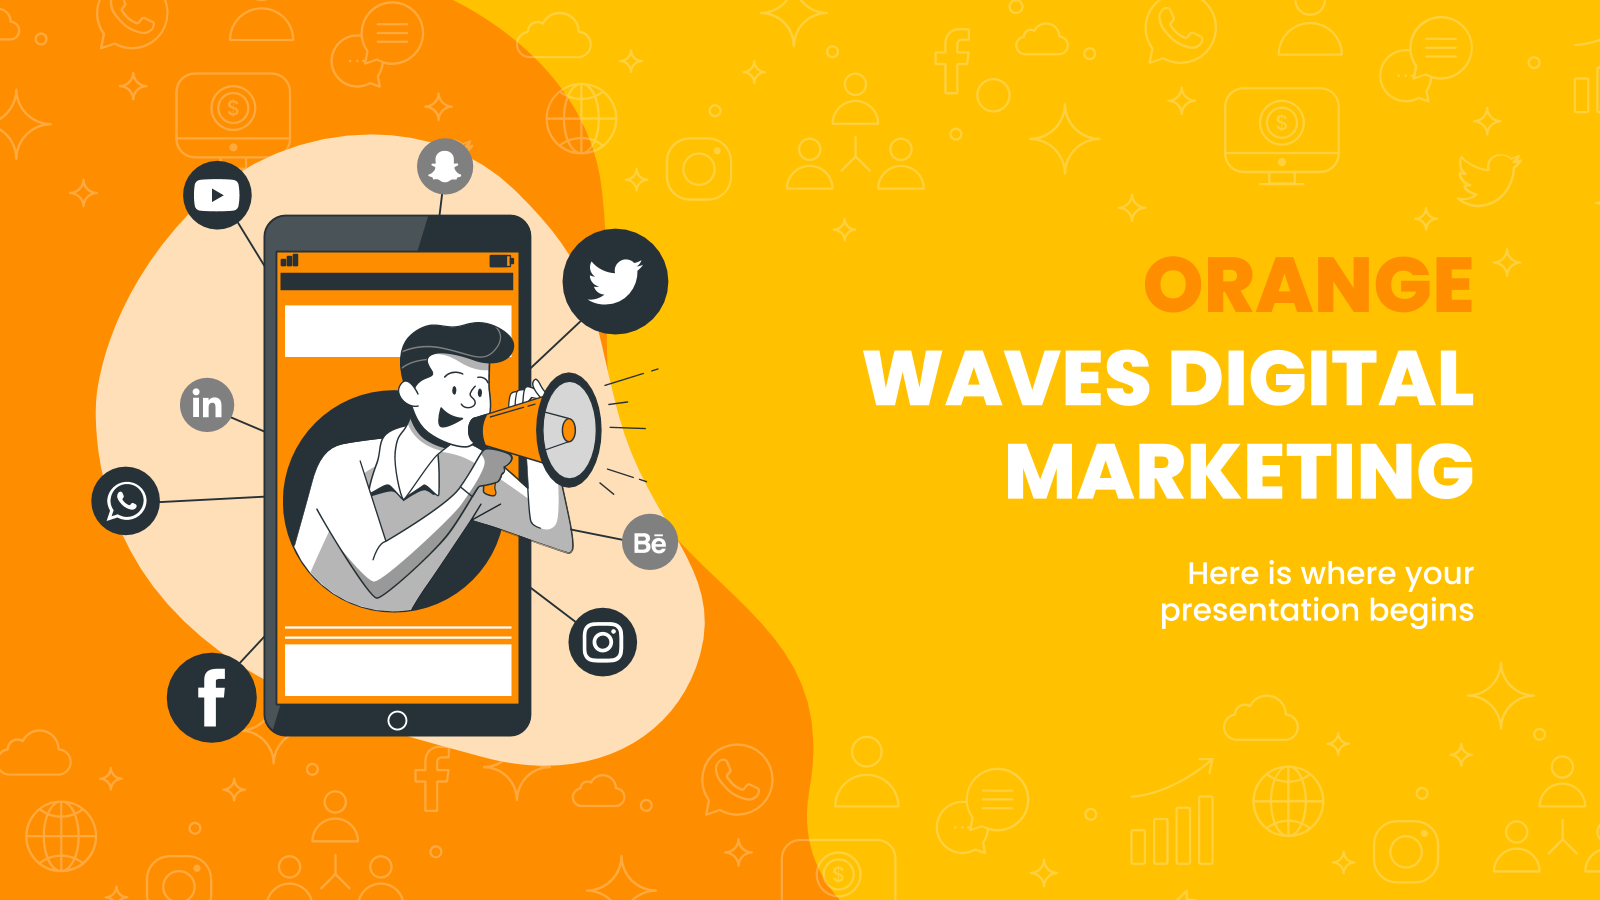 Orange Waves Digital Marketing presentation template